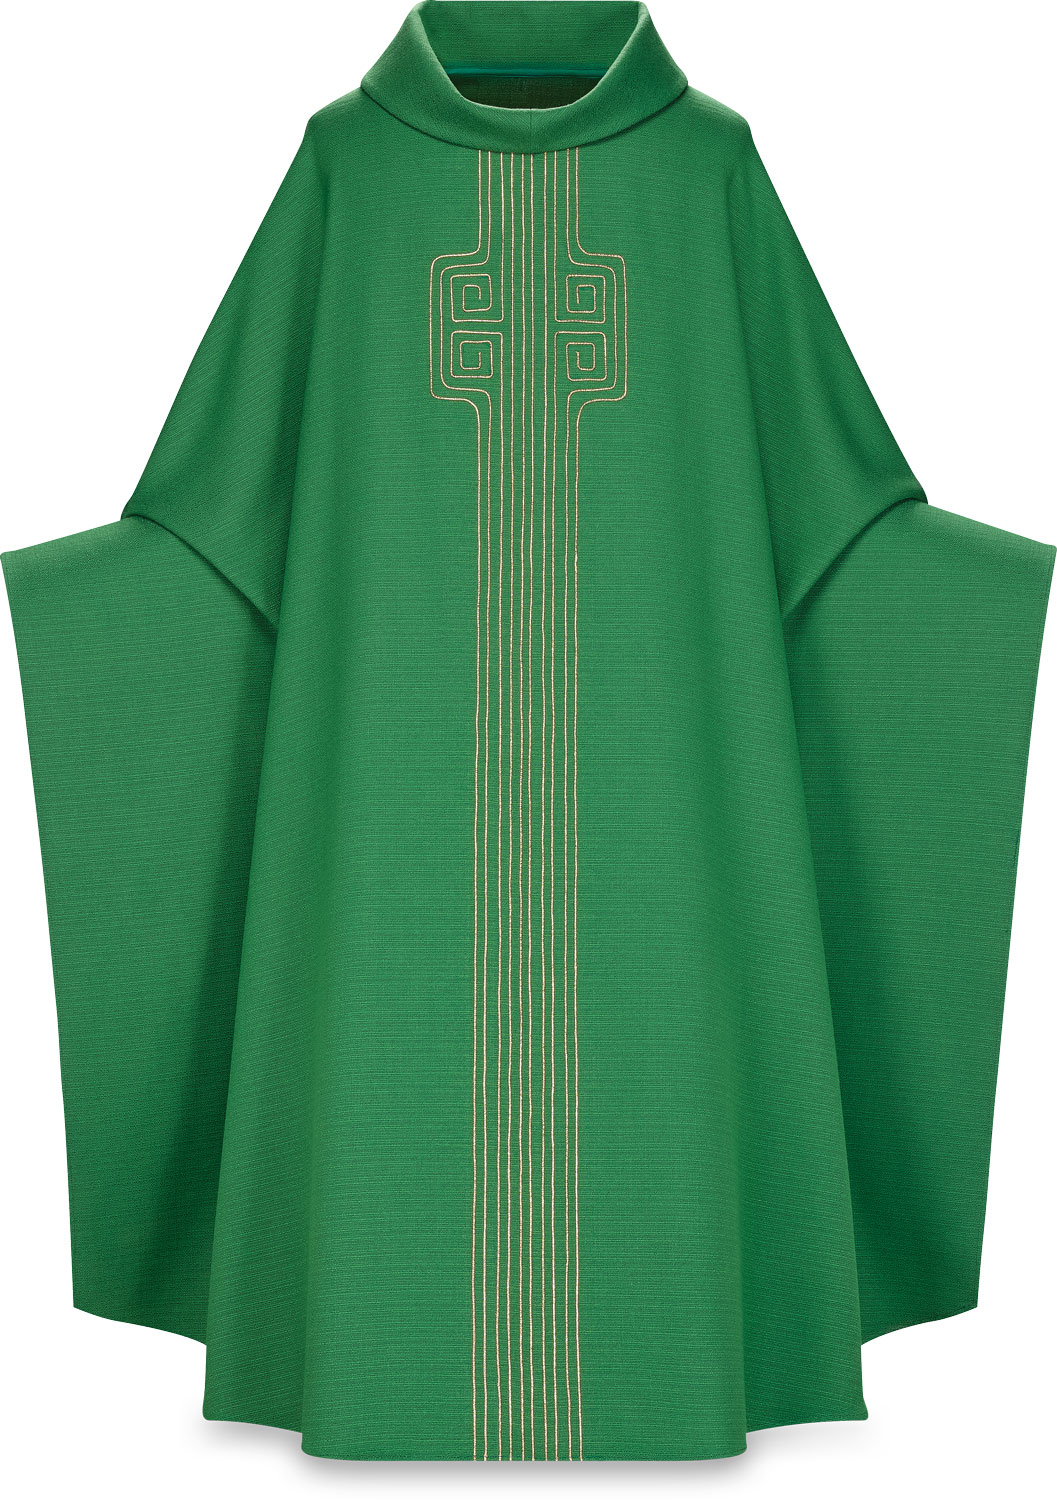 Chasuble | Green | 5239 | Slabbinck